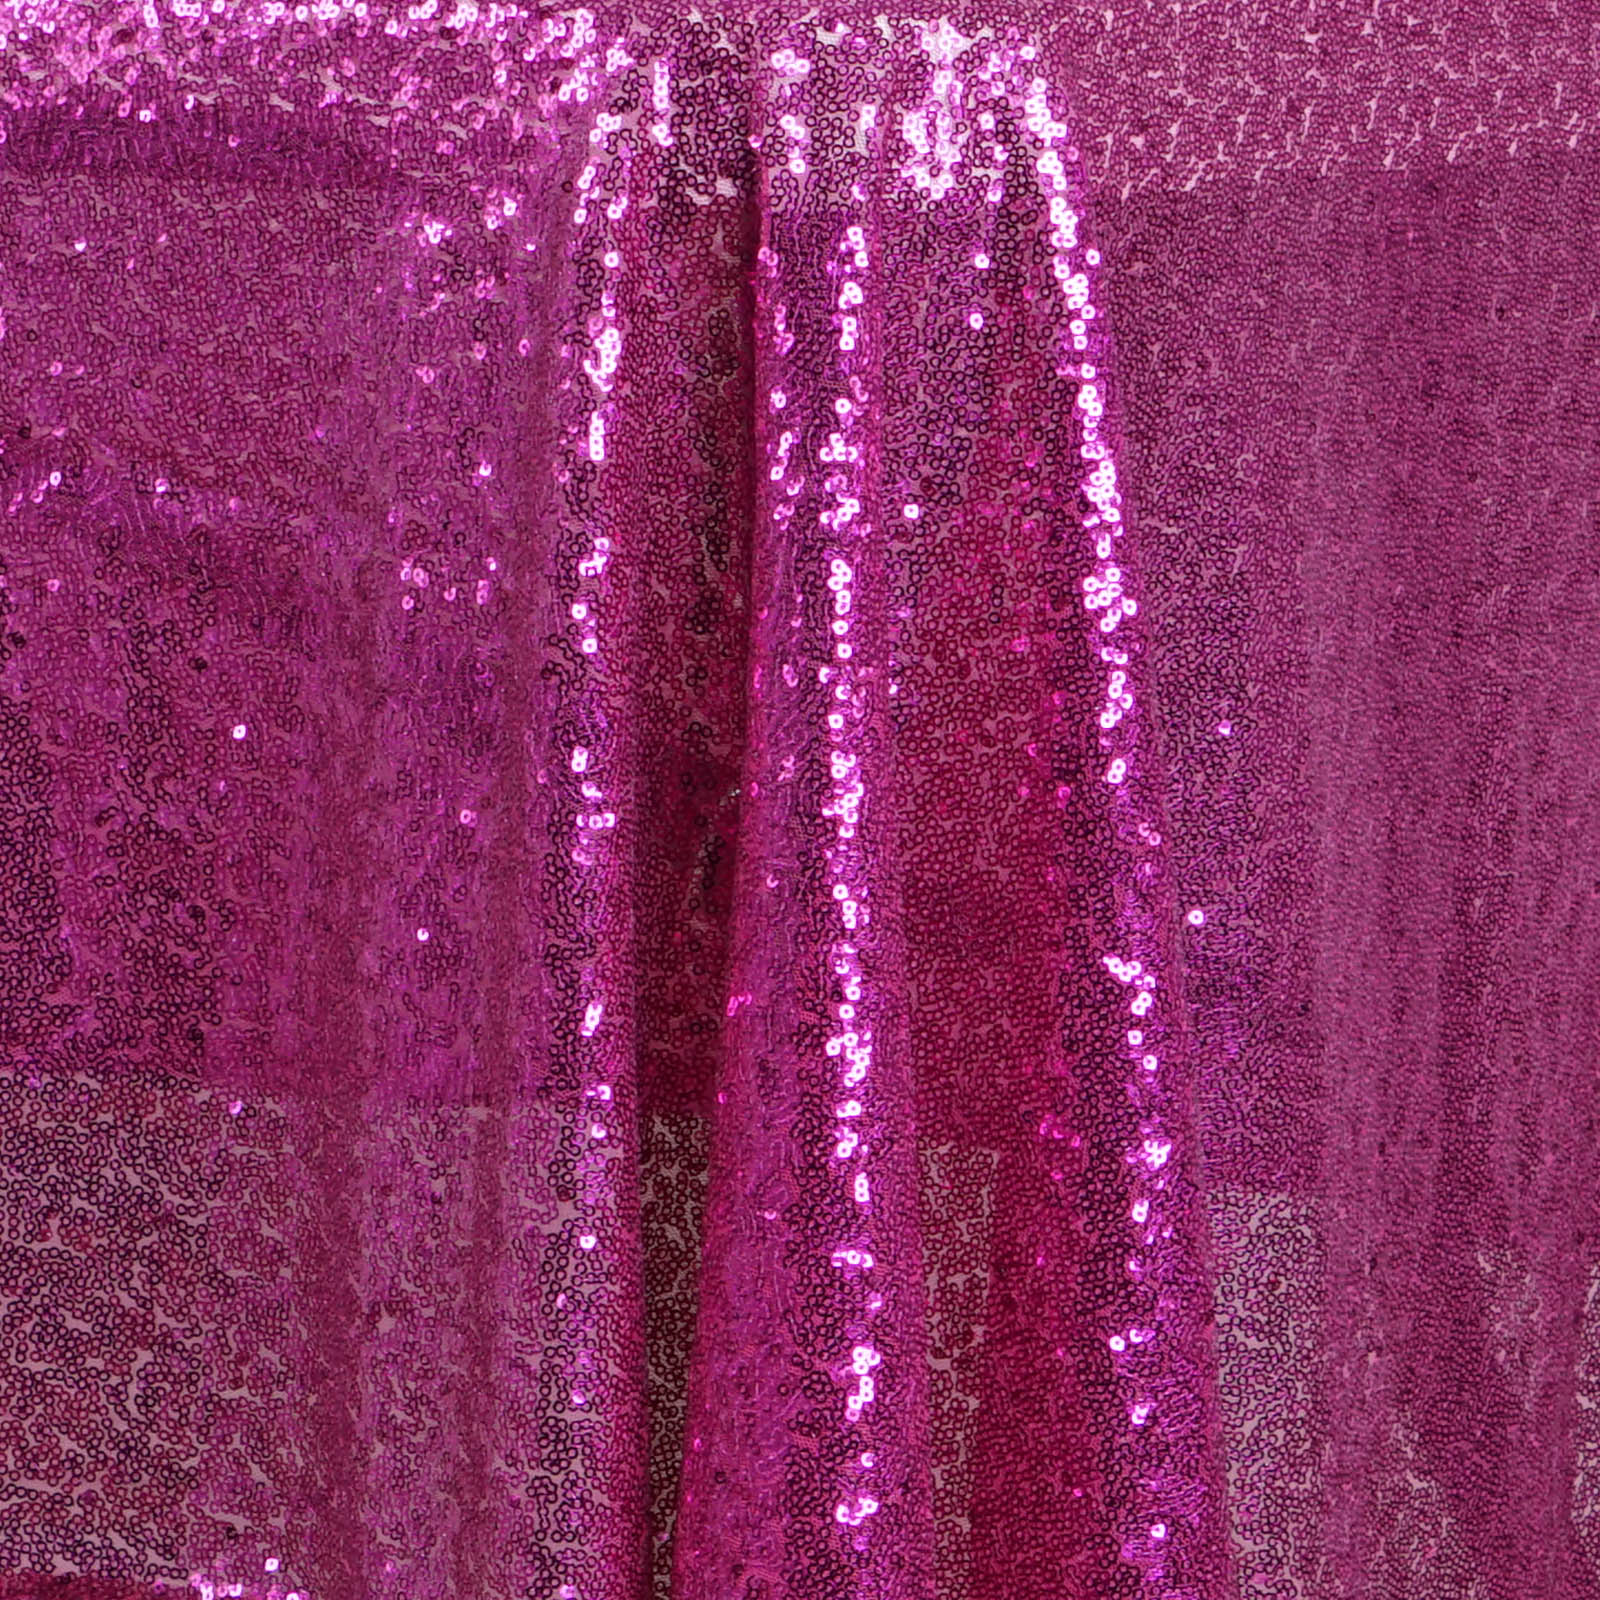 Sequin-RECTANGULAR-Tablecloth-Dinner-Wedding-Linens-Party-Decorations-Wholesale thumbnail 15